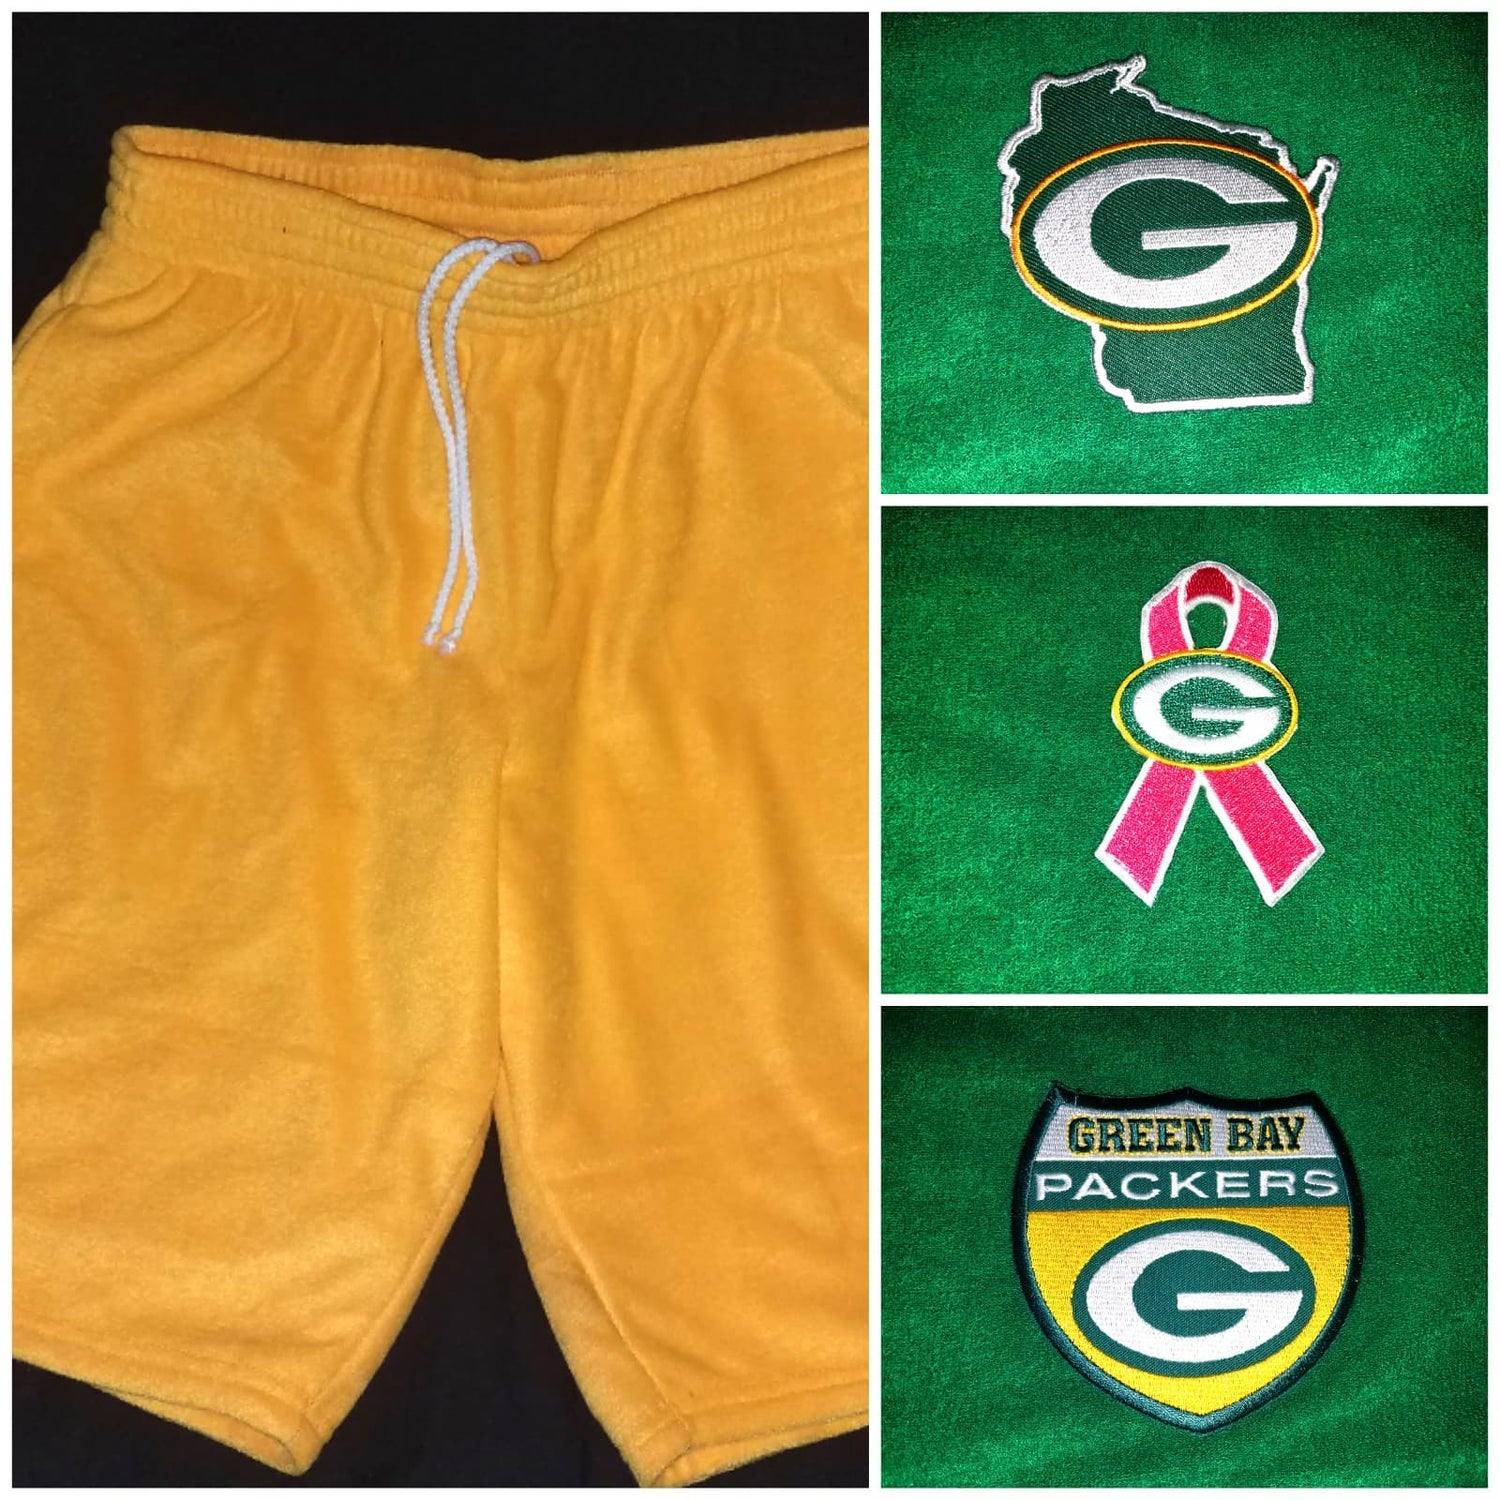 Image of Green Bay Packers Themed Towel Shorts